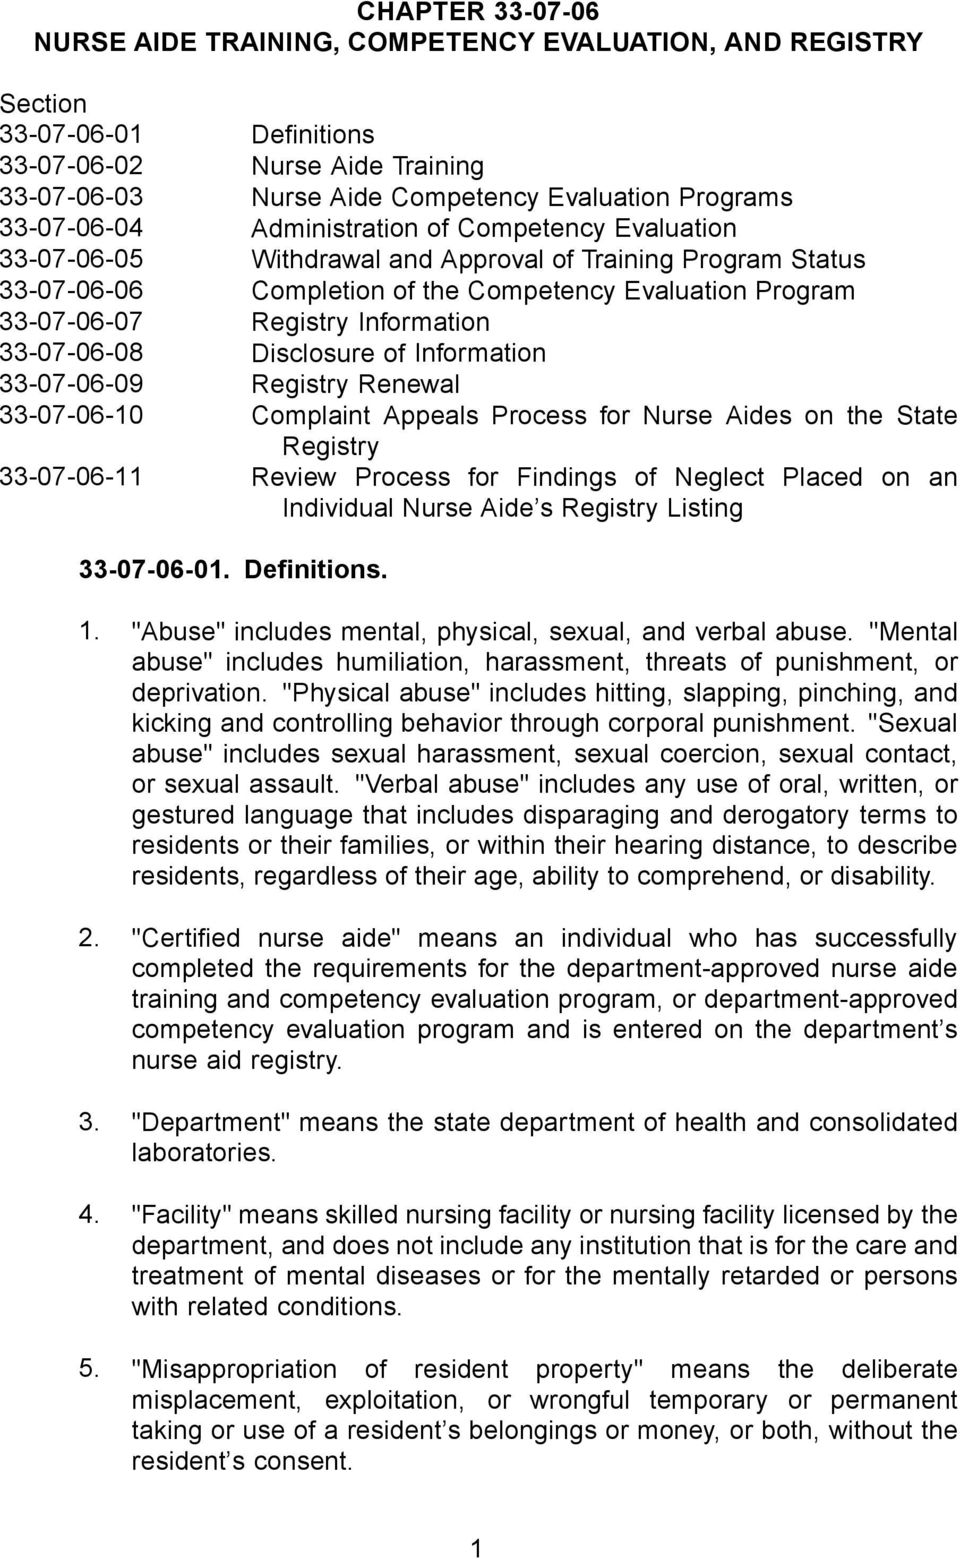 Information 33-07-06-08 Disclosure of Information 33-07-06-09 Registry Renewal 33-07-06-10 Complaint Appeals Process for Nurse Aides on the State Registry 33-07-06-11 Review Process for Findings of